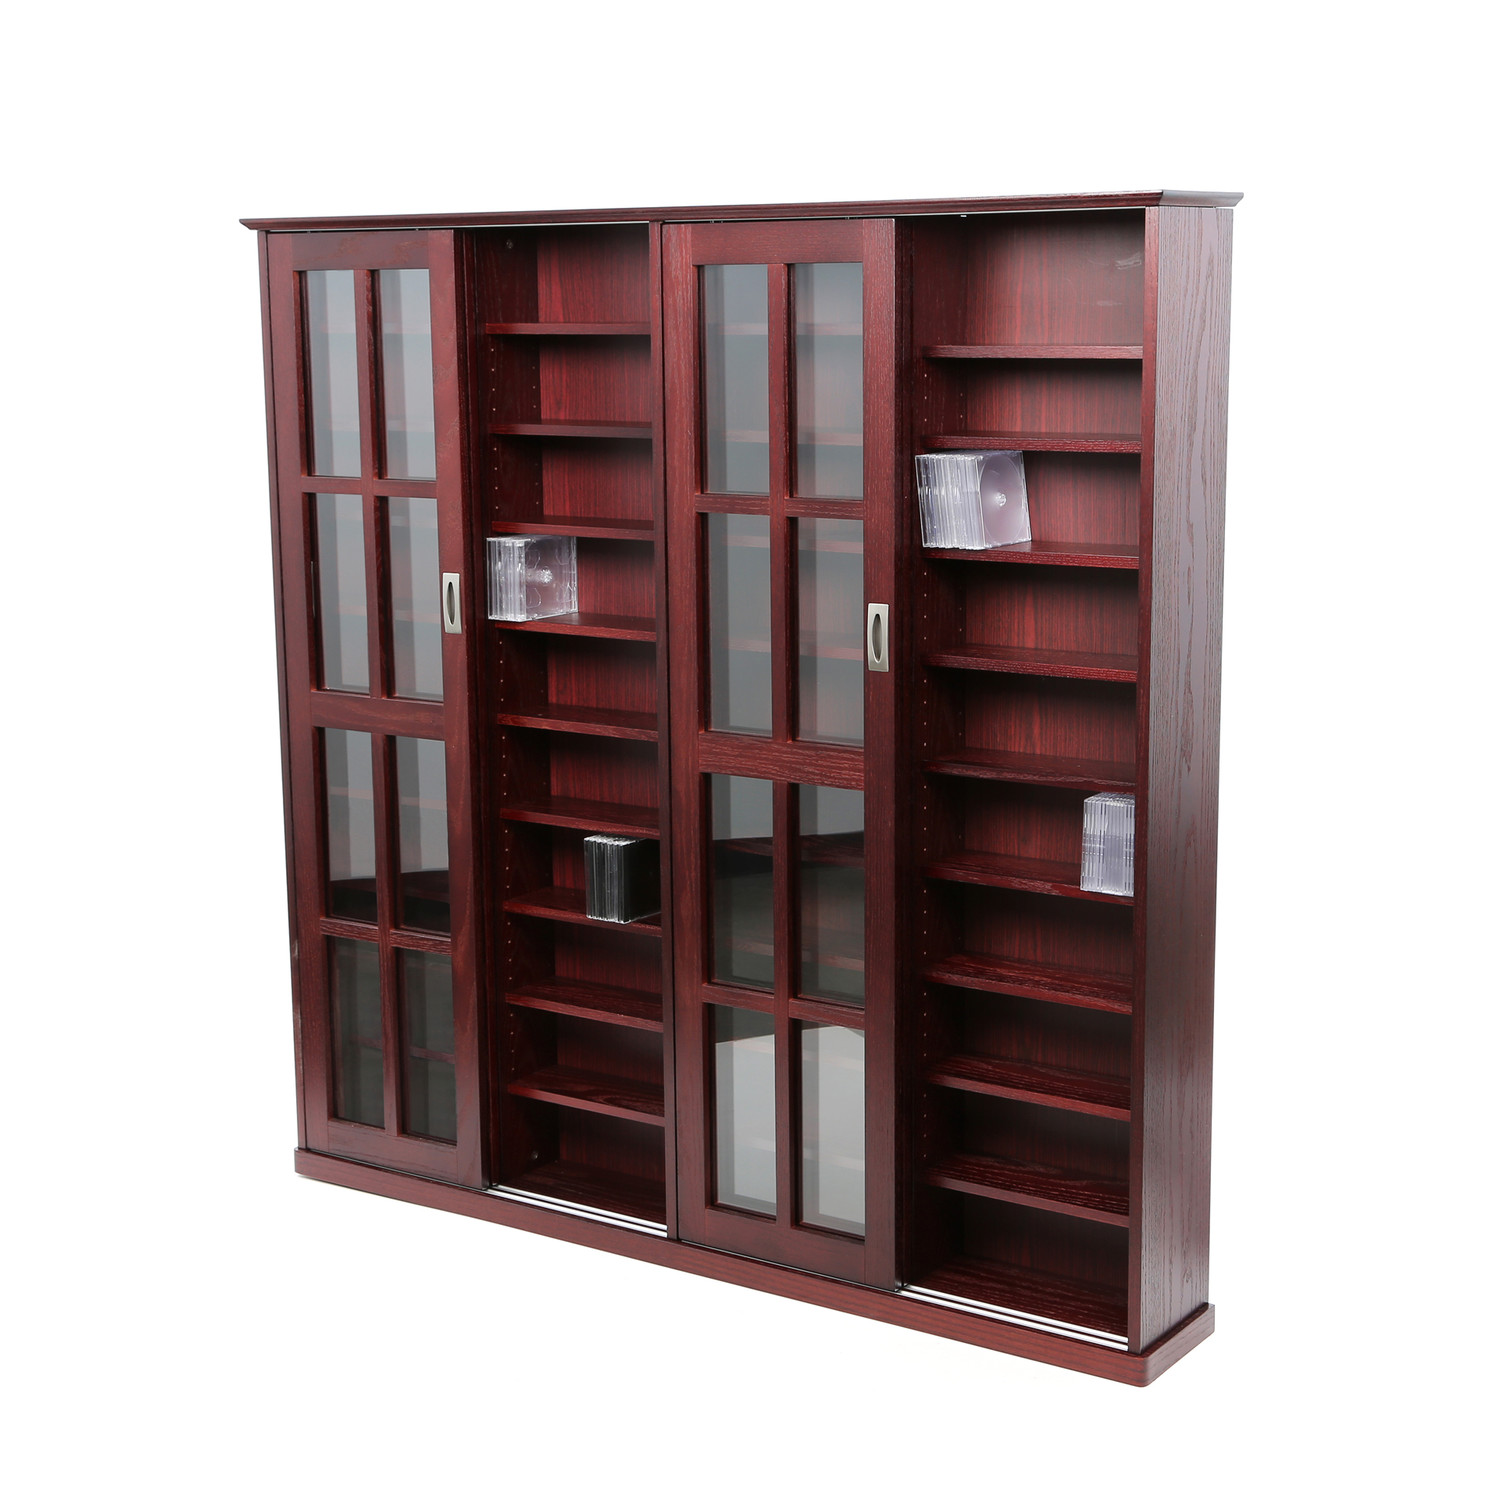 your home with corner media a wooden sturdy replacement fabulous for door stained give shelf ideas storage decor interior and doors entertainment white audio cabinets the using glass cabinet locking stereo furniture square stylish